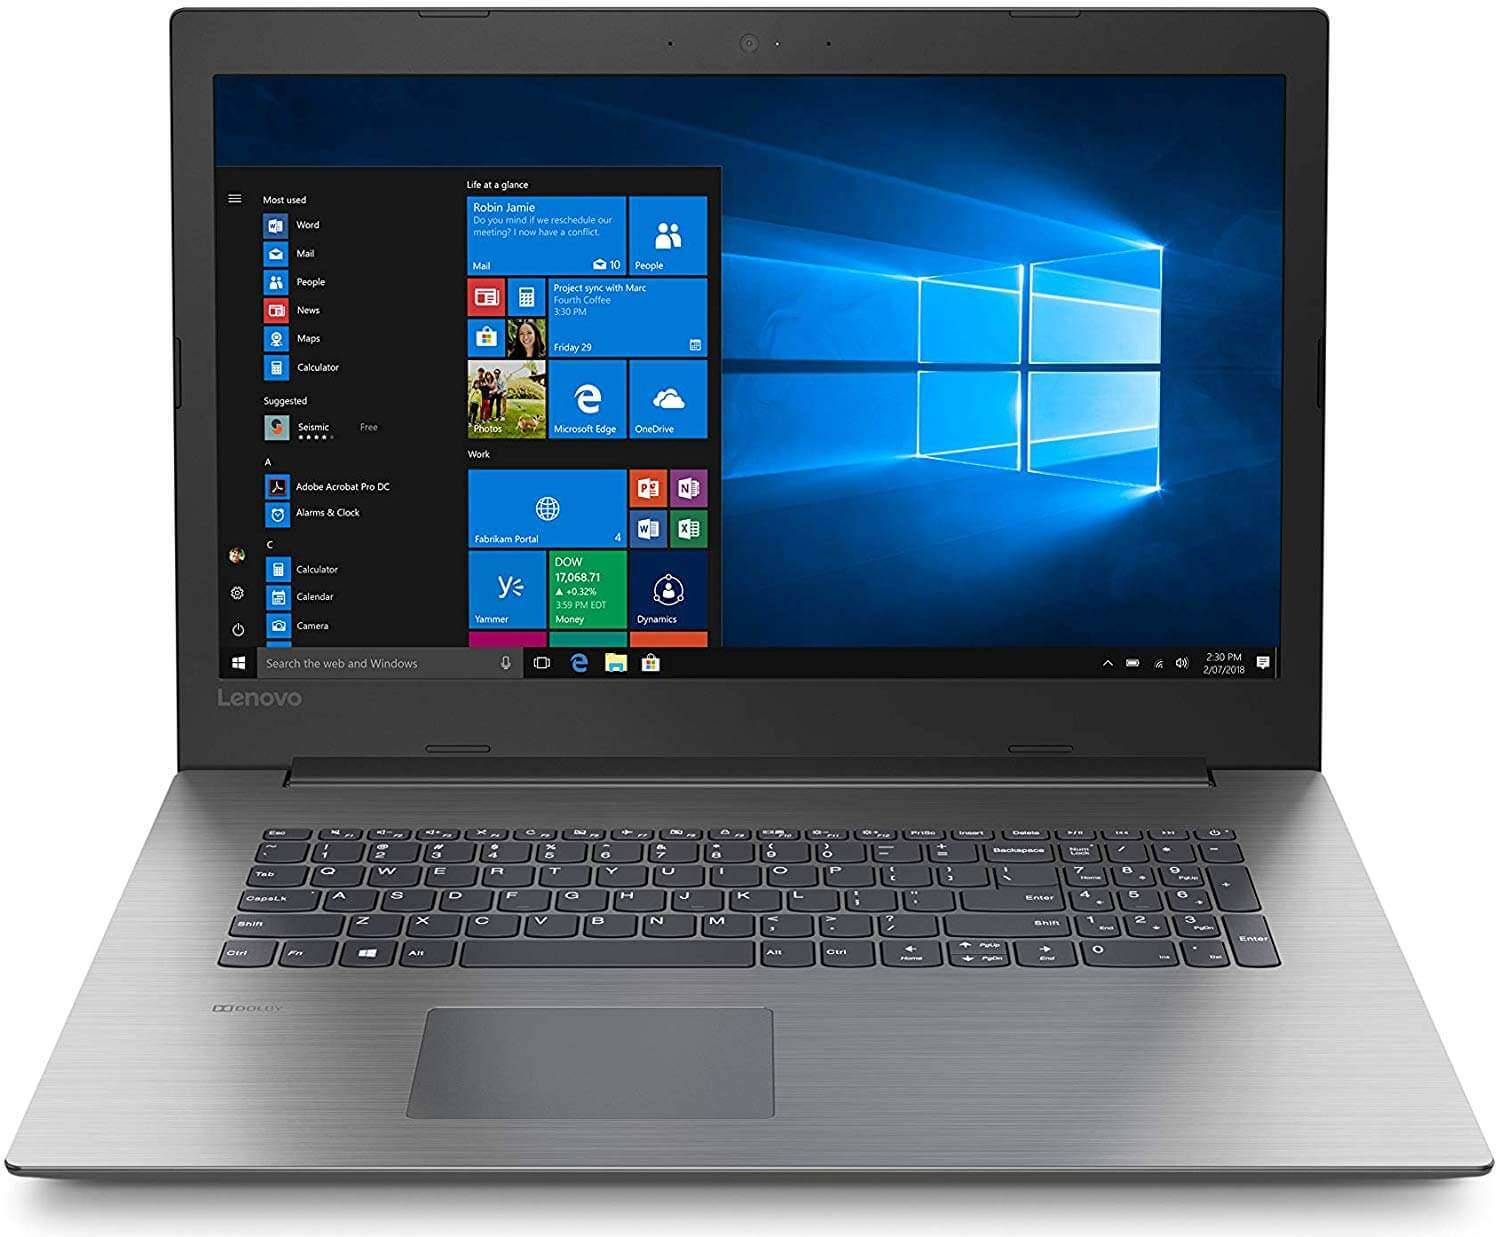 Lenovo IdeaPad 330 Laptop With 15.6-Inch Display, Core i3 Processor/4GB RAM/1TB HDD/Intel HD Graphics Grey